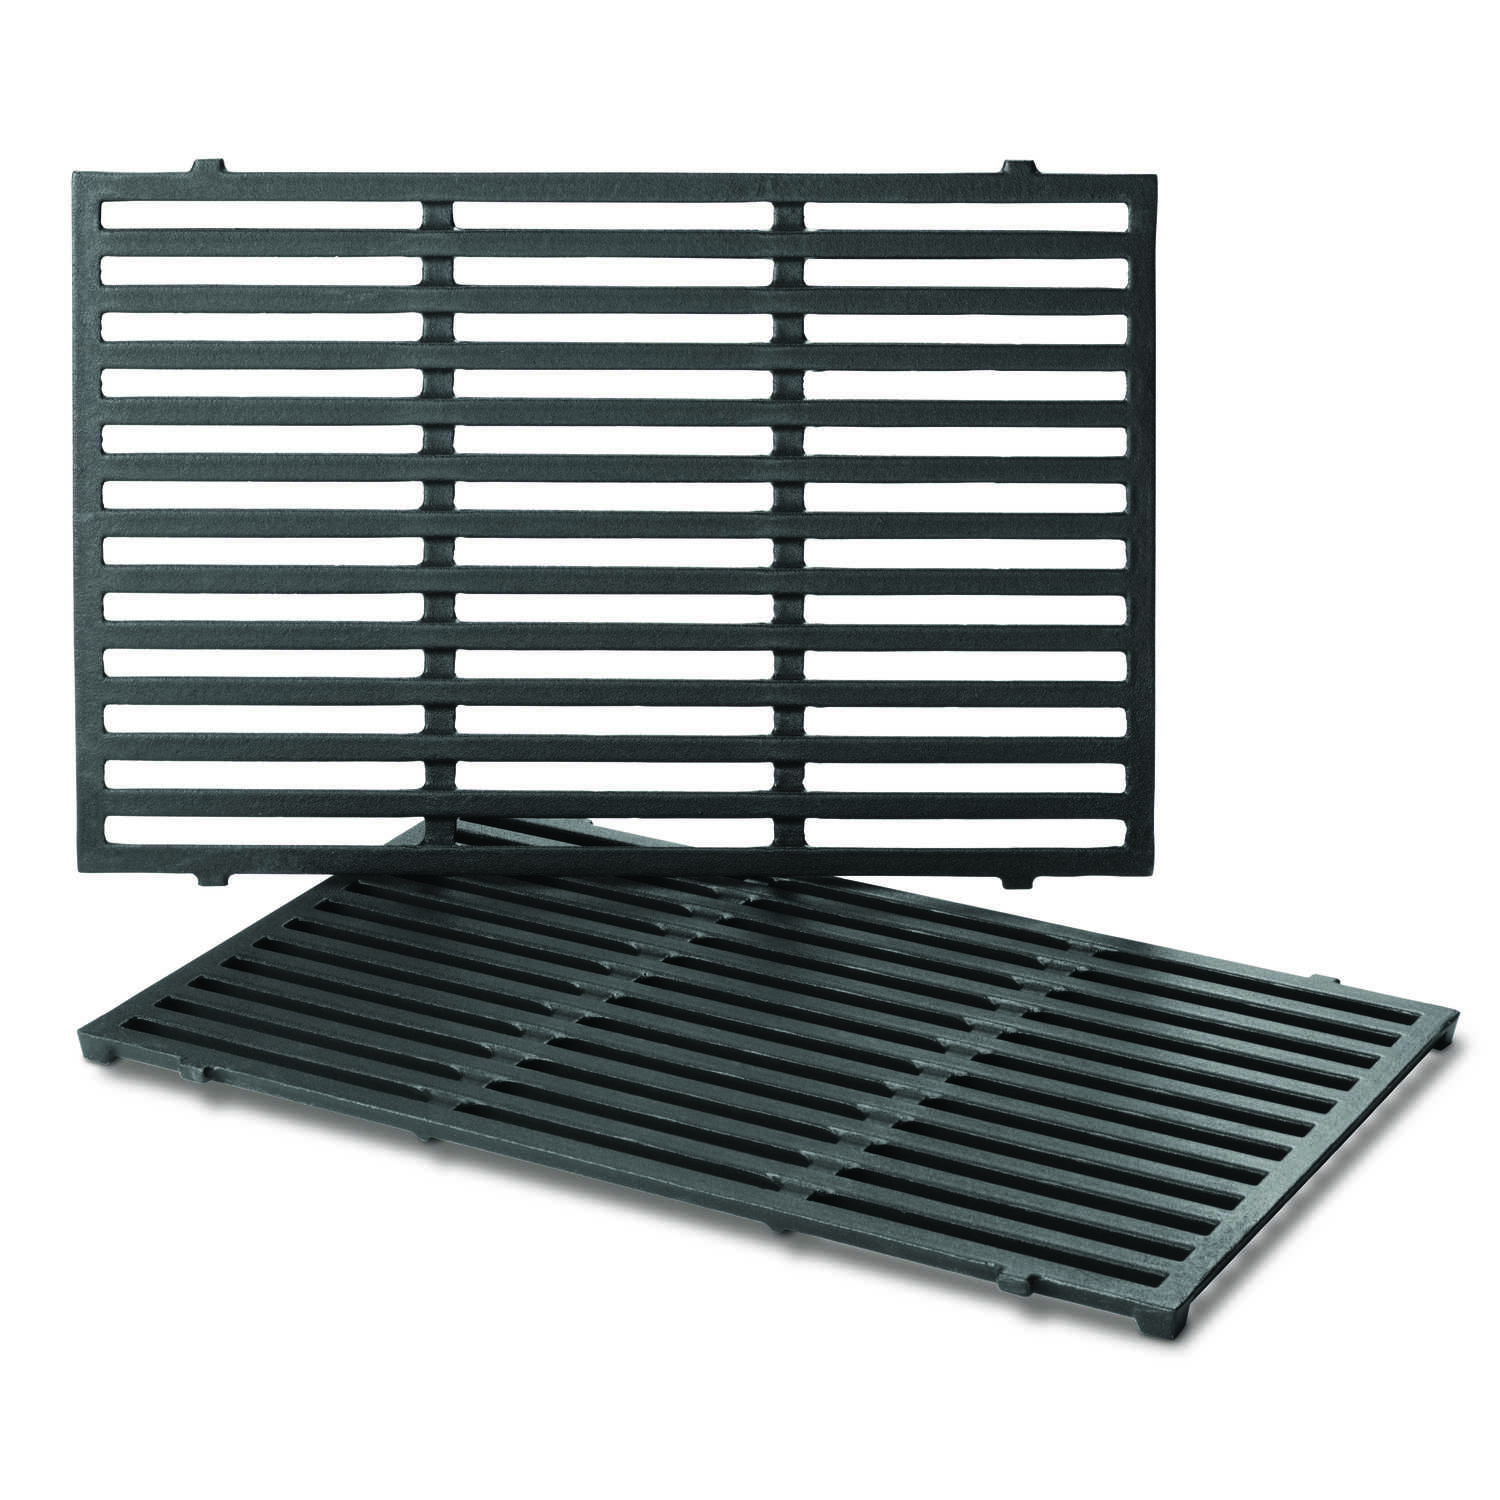 Weber  Cast Iron/Porcelain  Grill Cooking Grate  0.5 in. H x 17.5 in. L x 11.9 in. W